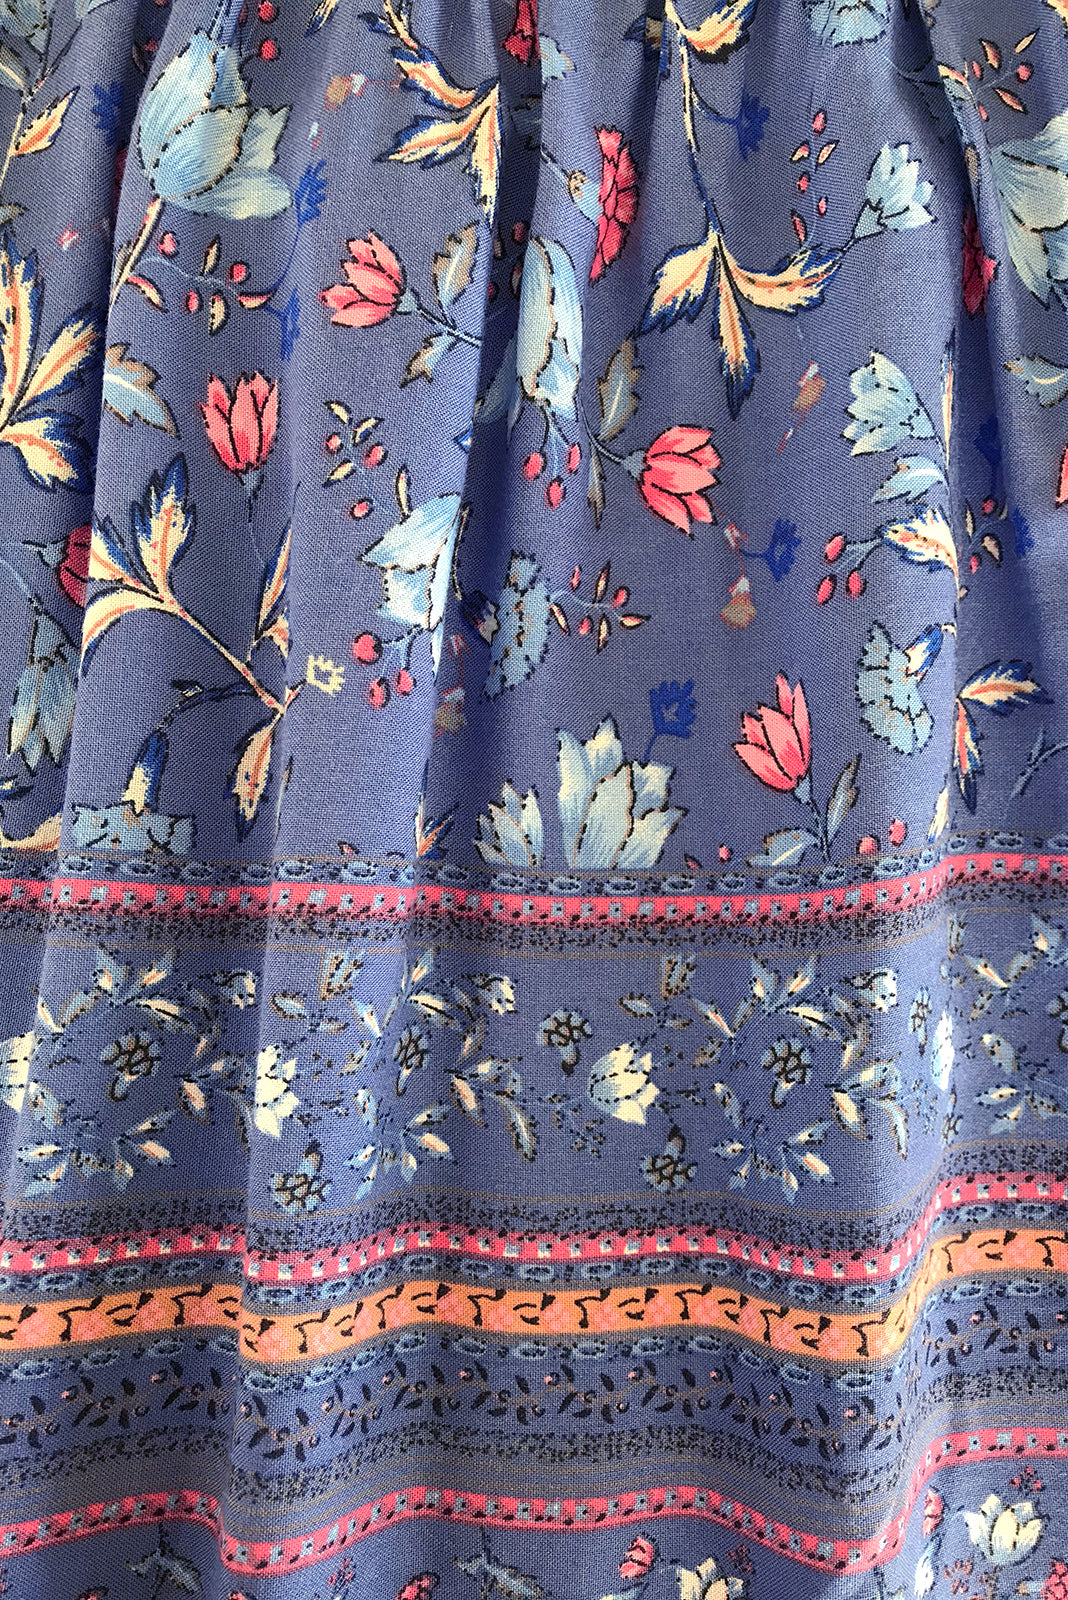 Fabric swatch of Viva Highway Blues Dress featuring 100% rayon in smoky blue base with pretty florals.